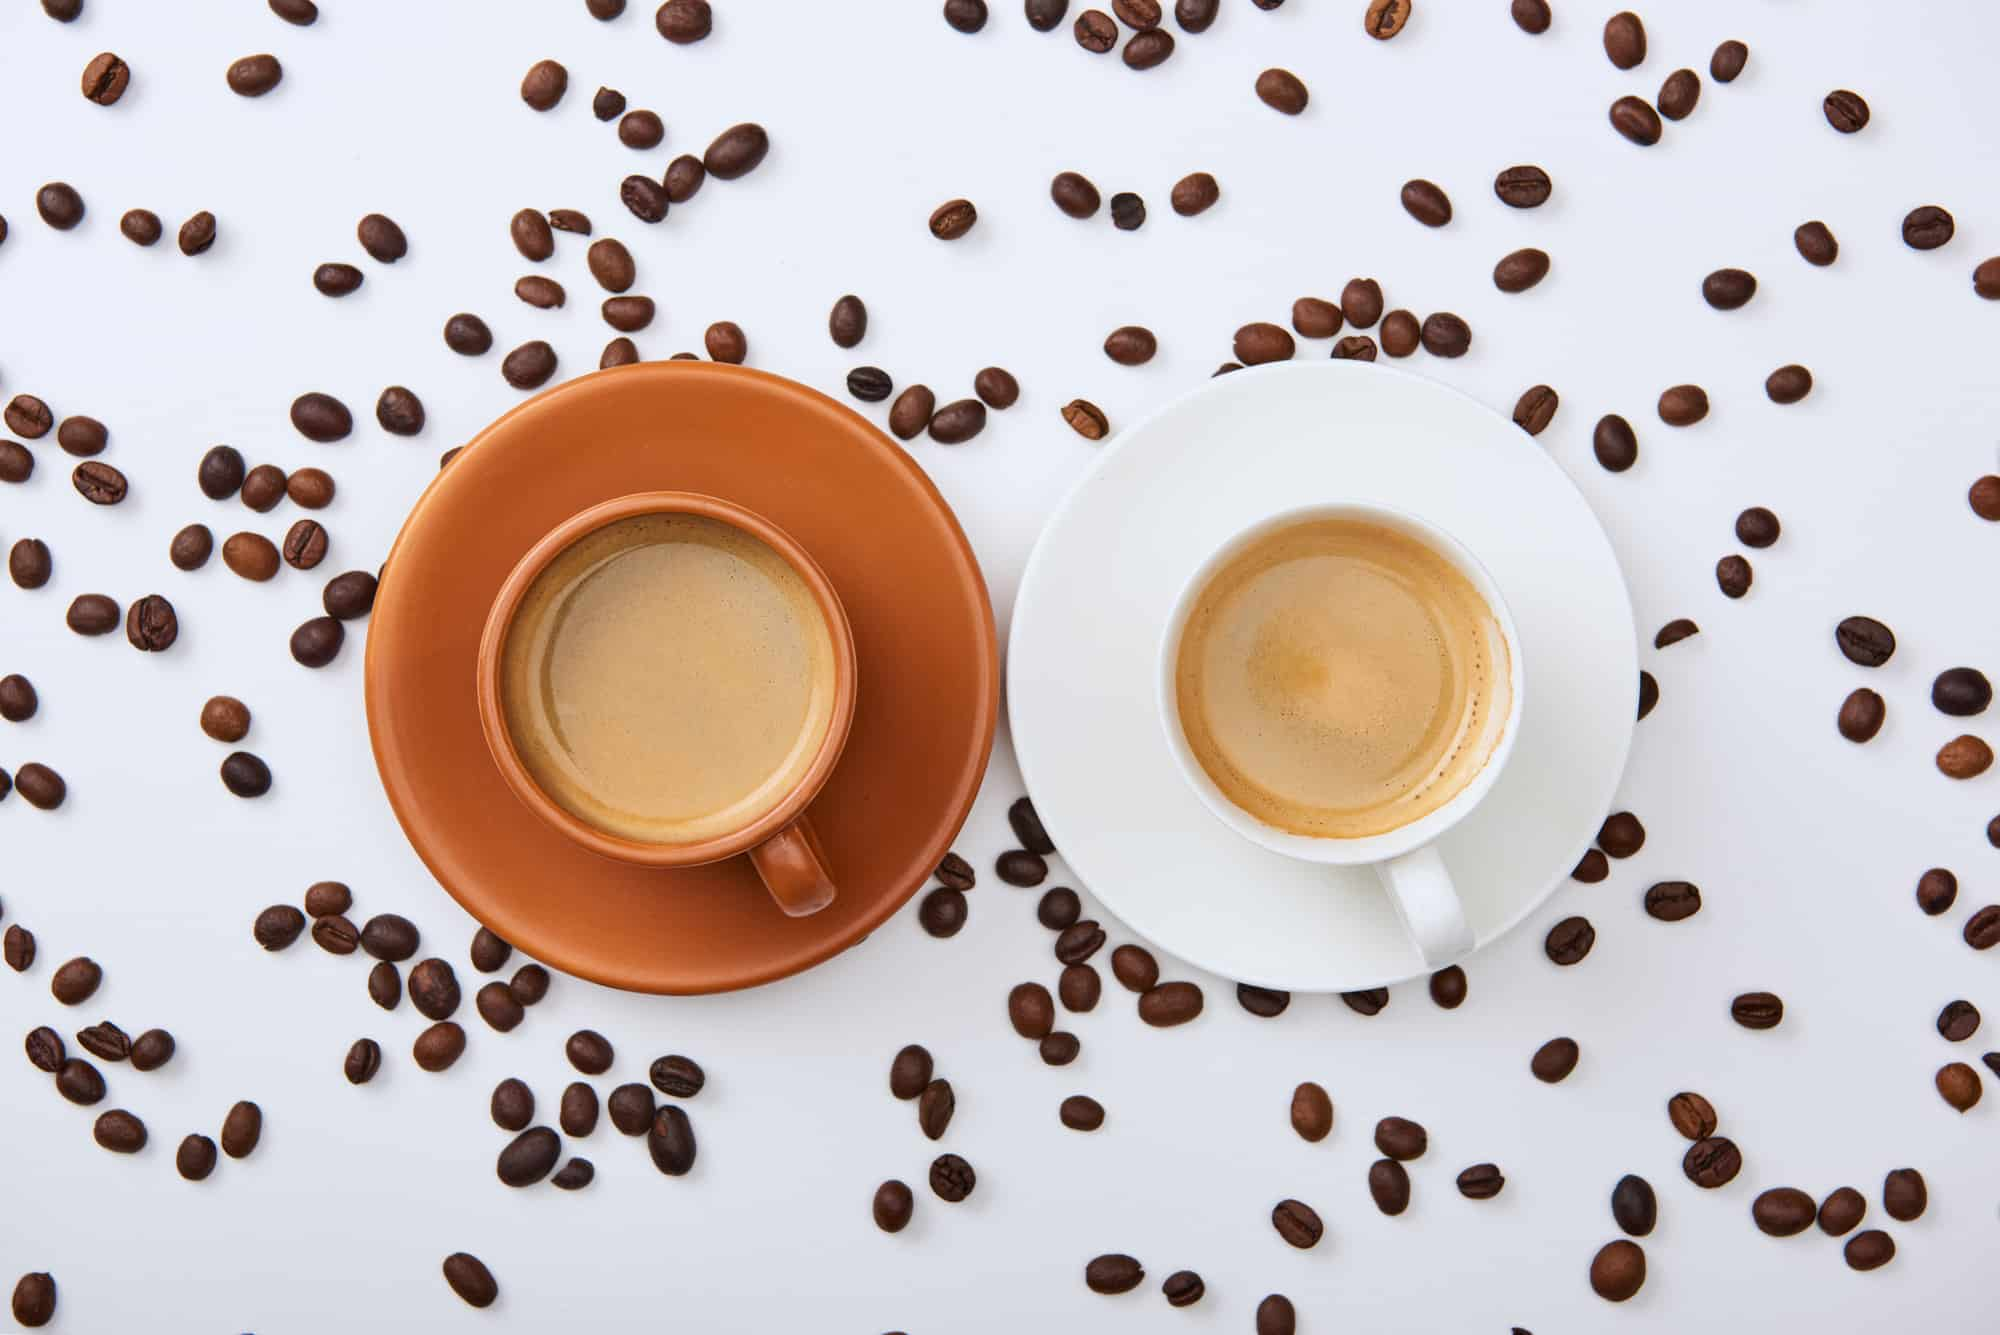 two cups of coffee side by side with cream against coffee beans